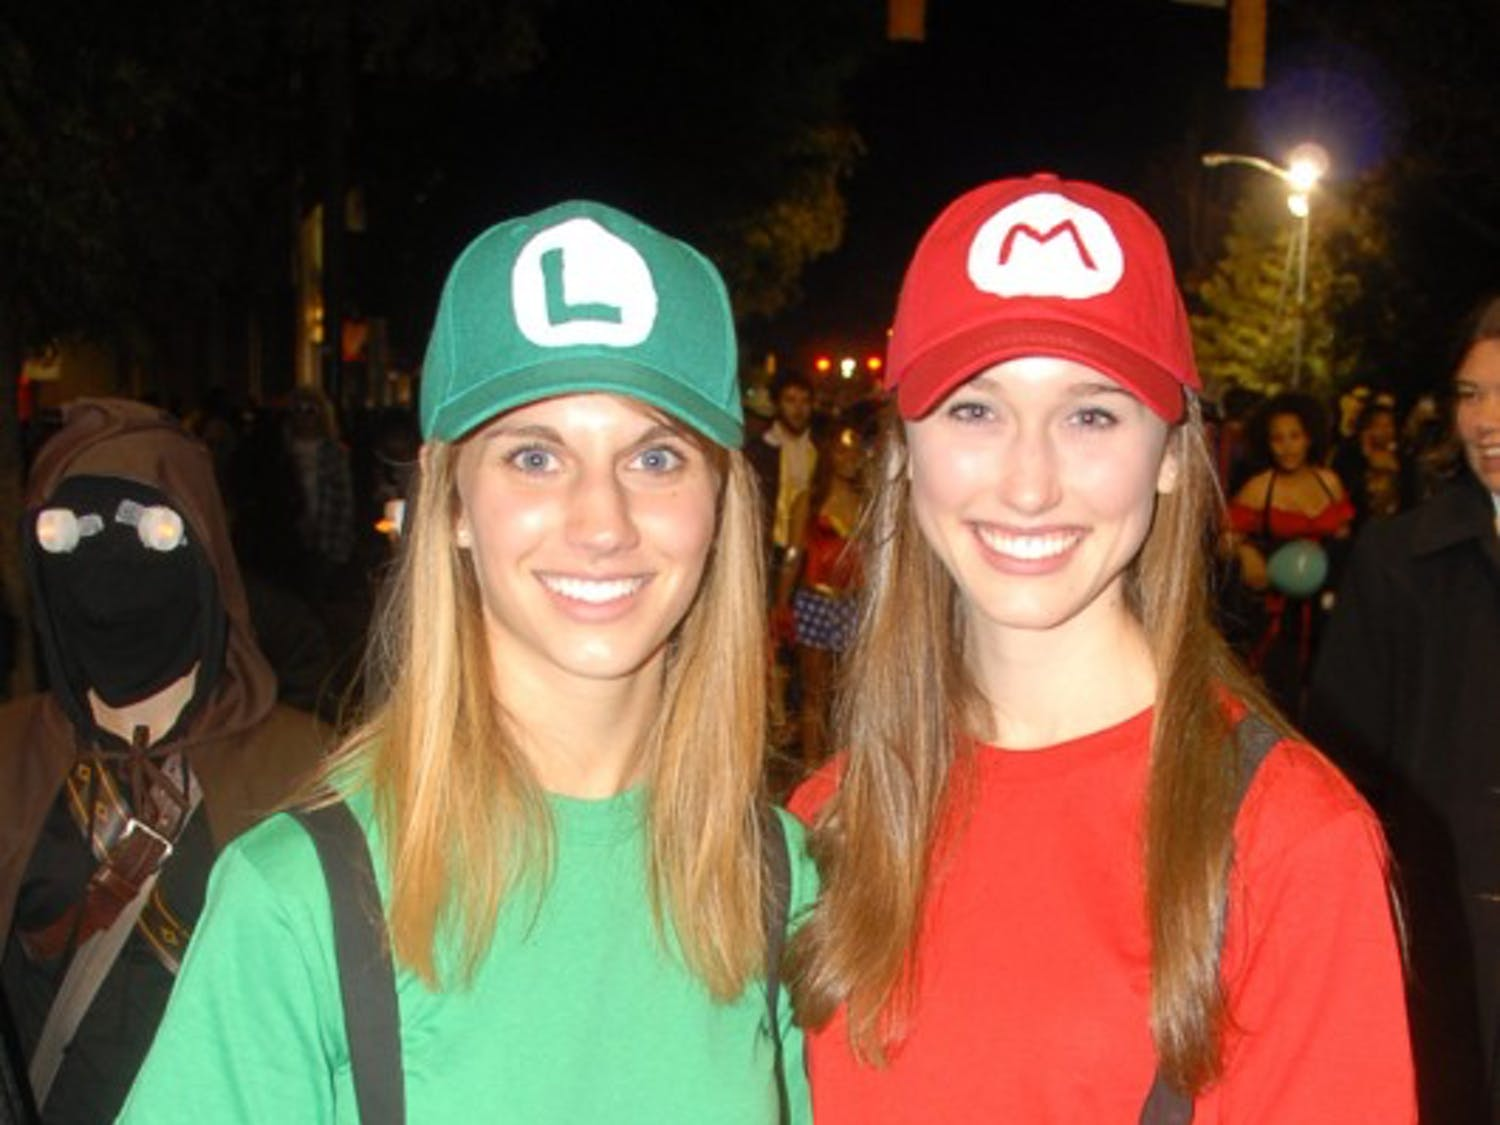 """Jillian Froelick, left, and Lauren Swords, right, pose as Luigi and Mario. """"Other Marios and Luigis are very welcoming,"""" Froelick said.  Swords and Froelick said they had seen over 20 other Mario and Luigis."""